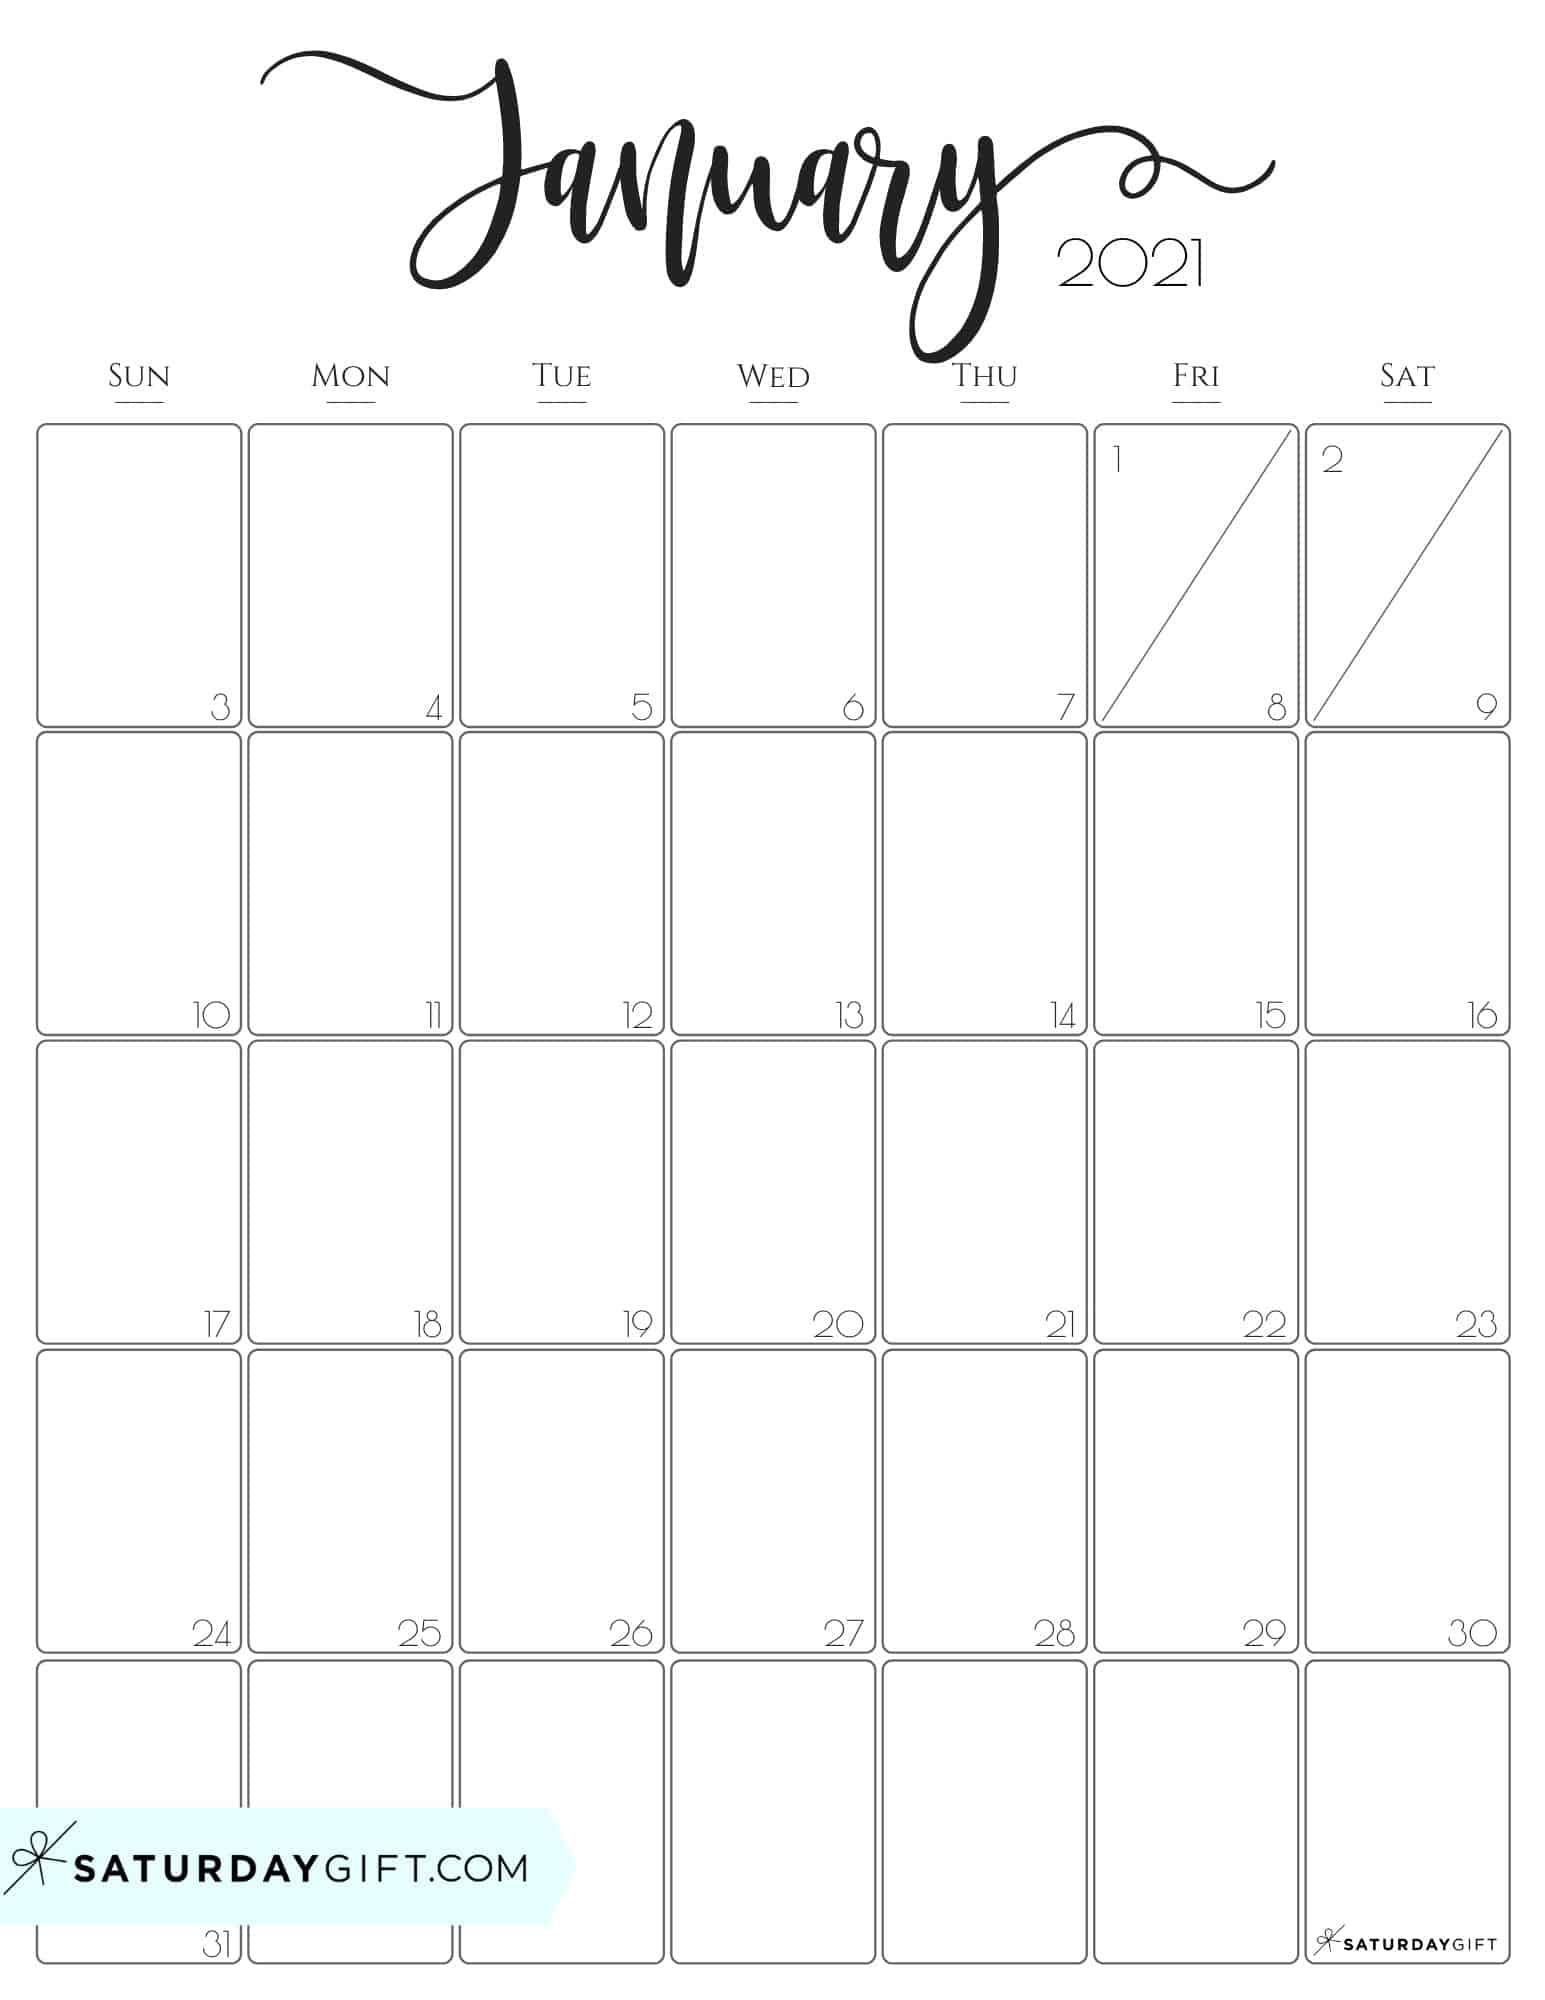 January 2021 Calendar Printable Free Cute (& Free!) Printable January 2021 Calendar | SaturdayGift in